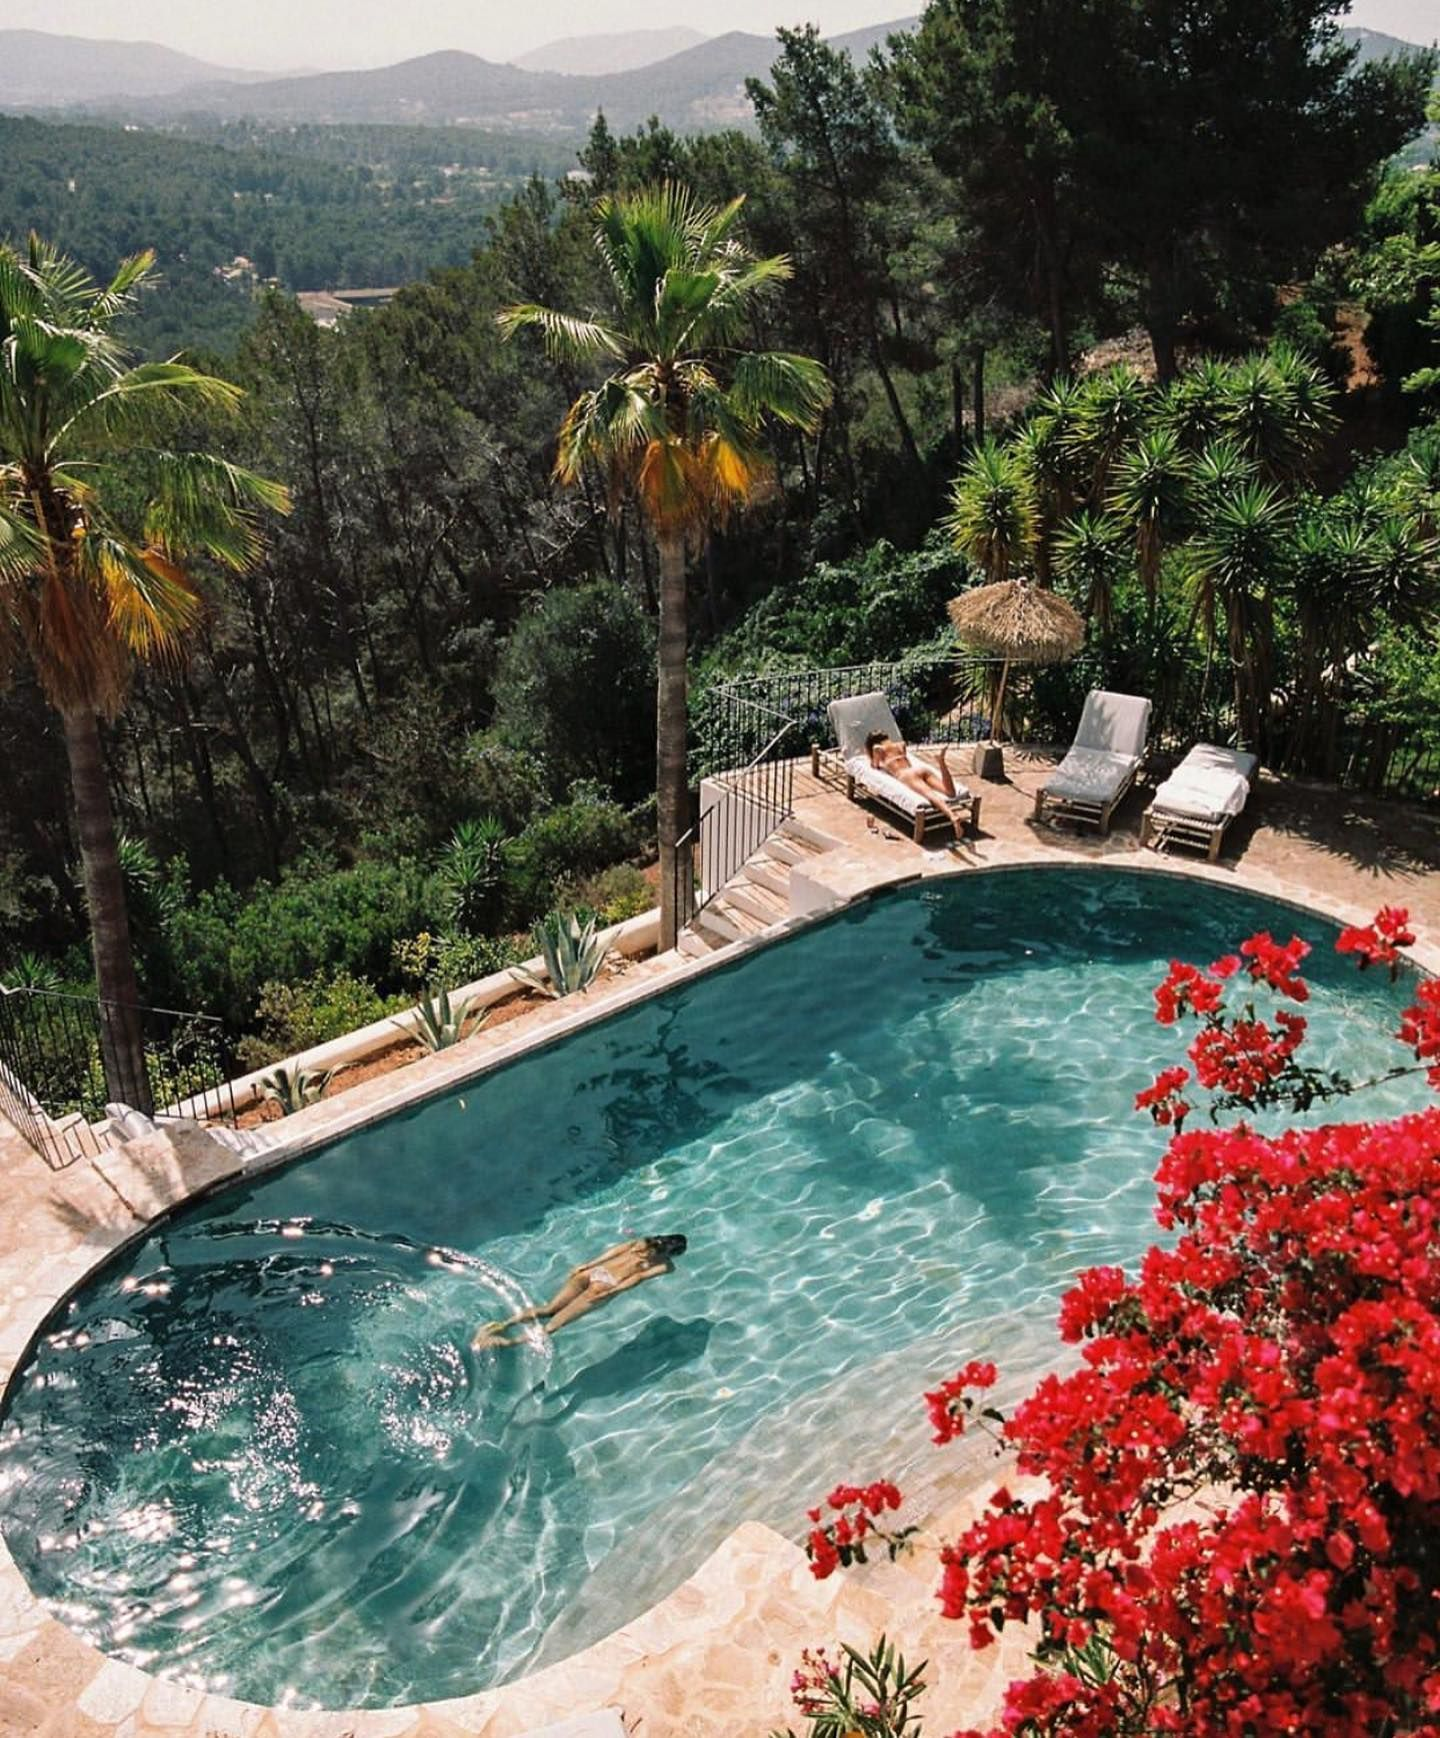 California We Love You For A Lot Of Reasons But This Is One Of Them Cameron Hammond In 2020 Pool Cameron Hammond Dream Pools